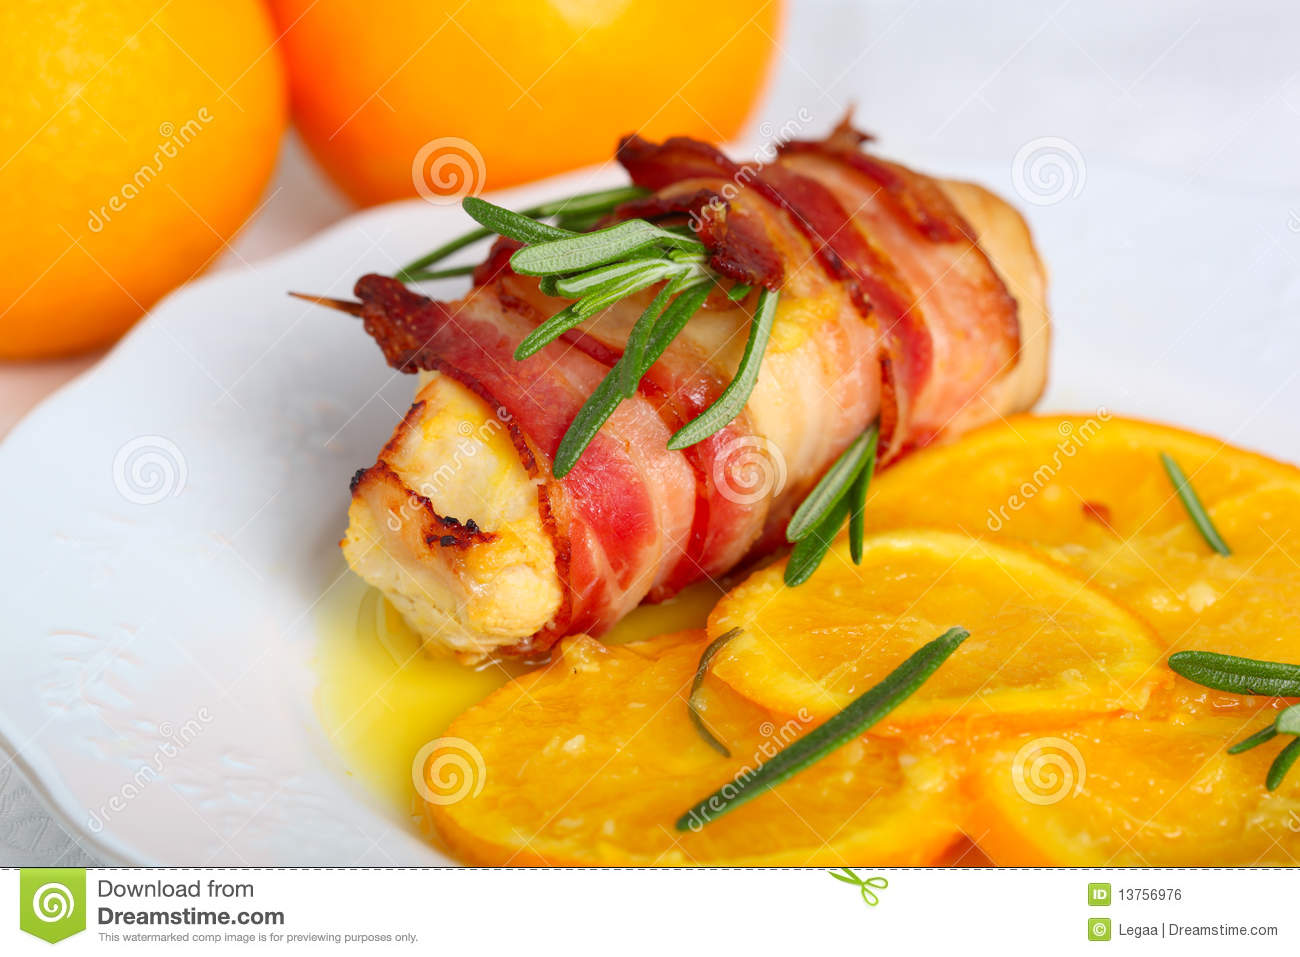 Turkey Breast Rolls In Bacon Royalty Free Stock Image - Image ...